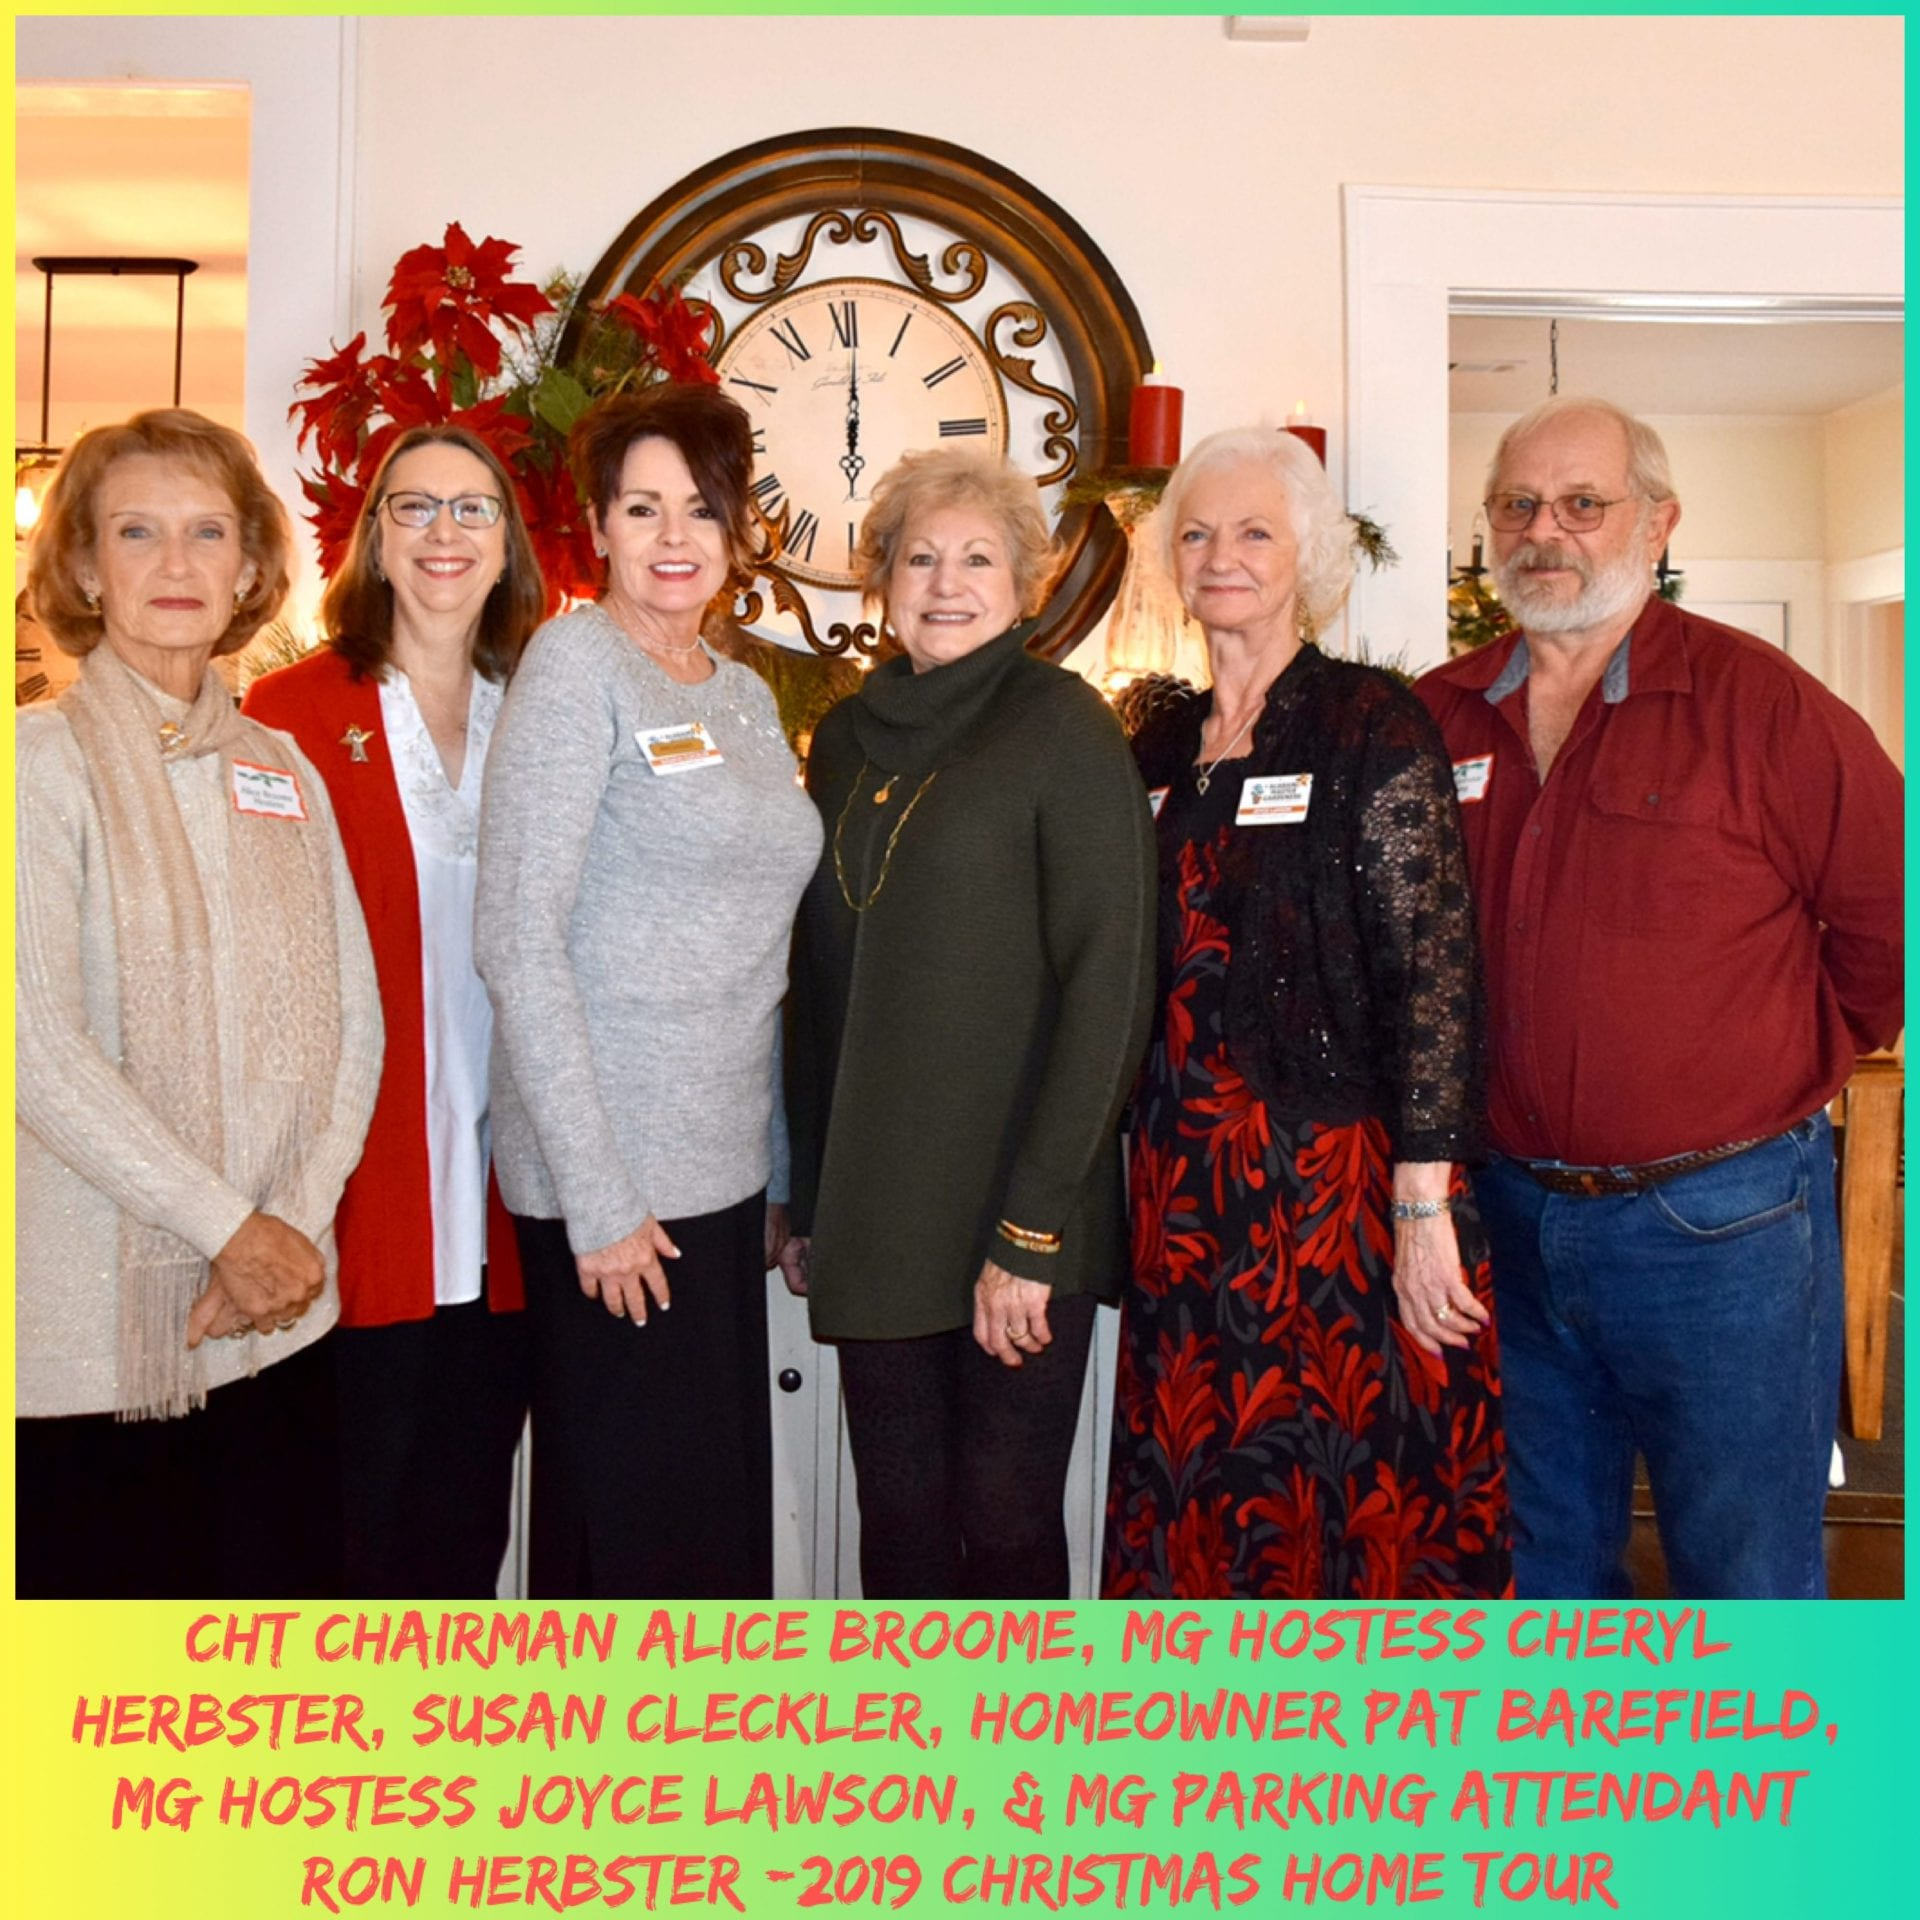 MG hostesses at Pat Barefield home for 2019 Christmas Home Tour